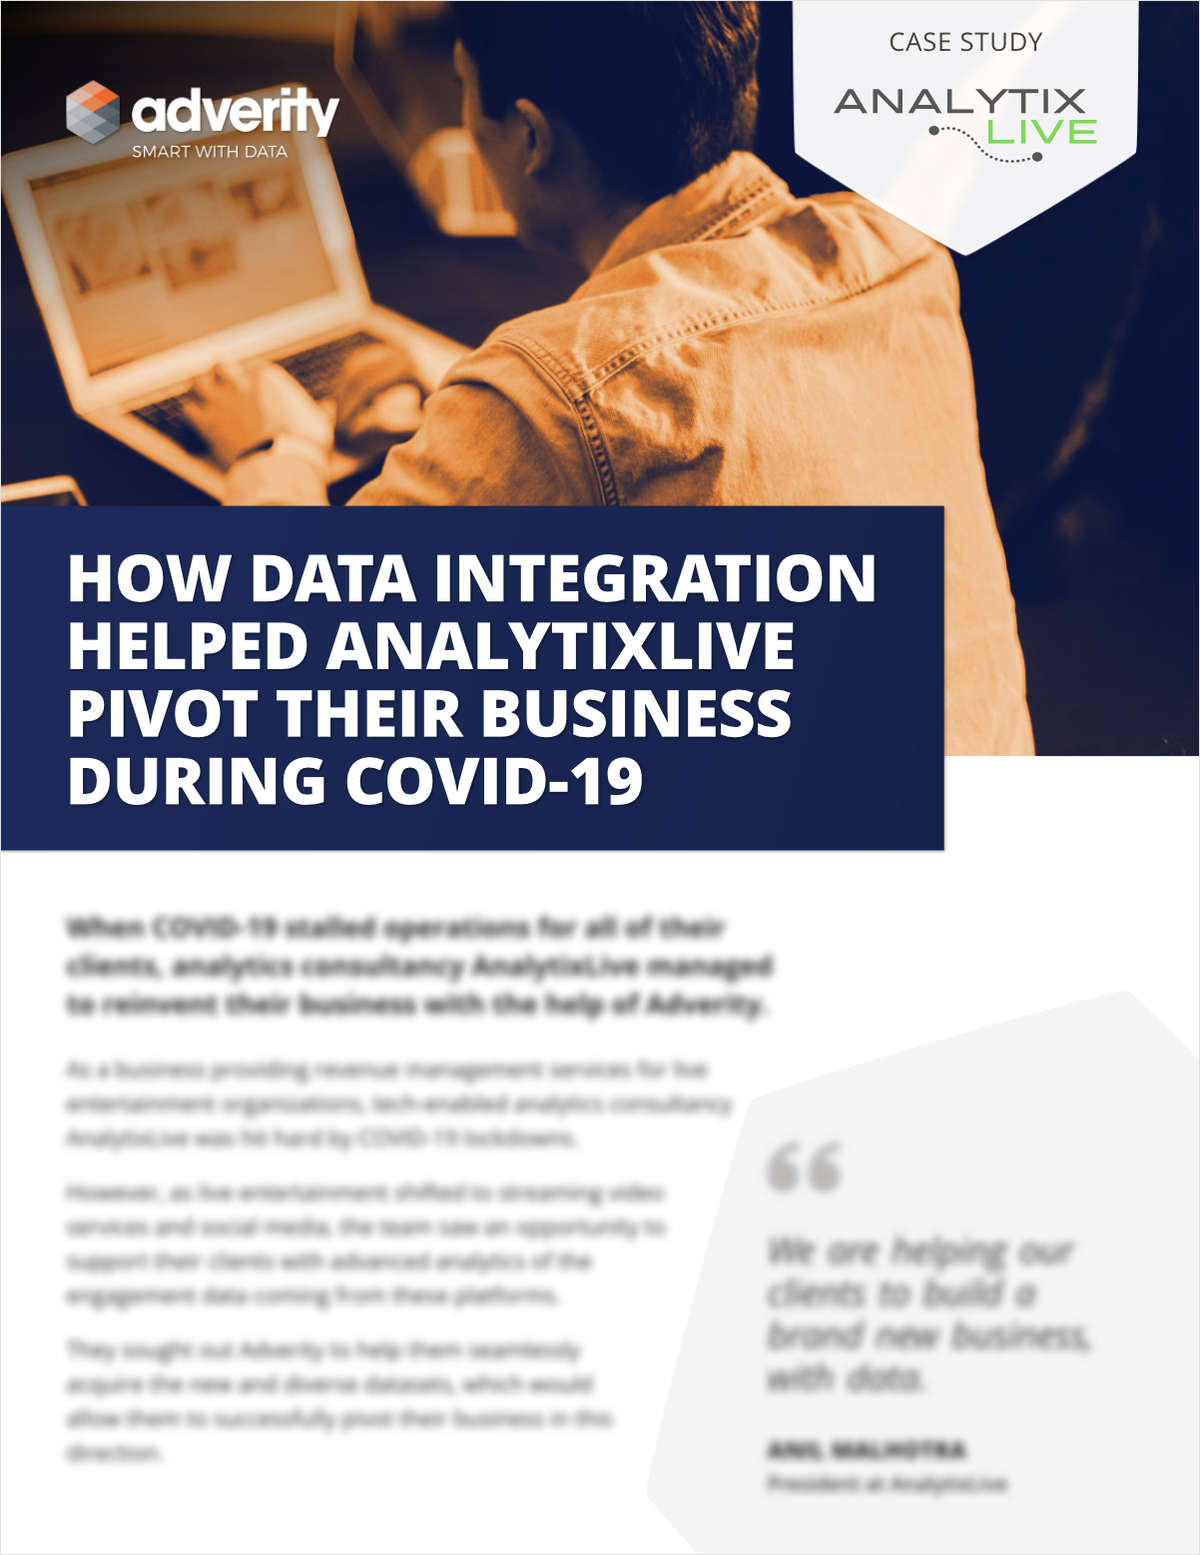 eGuide: How Data Integration Helped Analytix Live Pivot Their Business During Covid-19